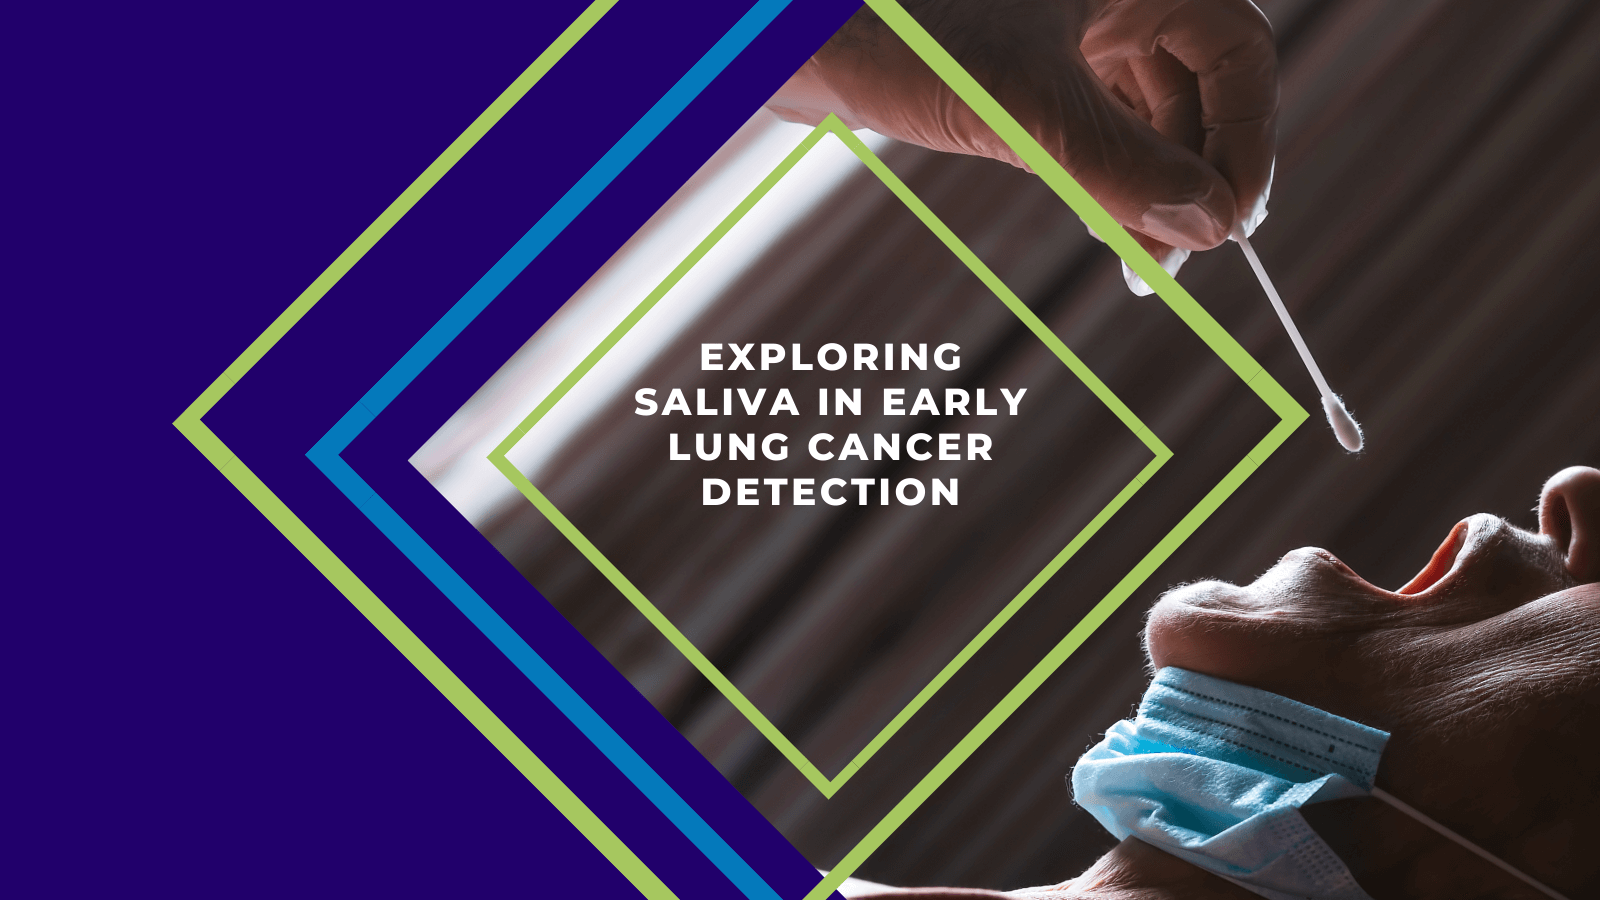 Exploring Saliva in Early Lung Cancer Detection